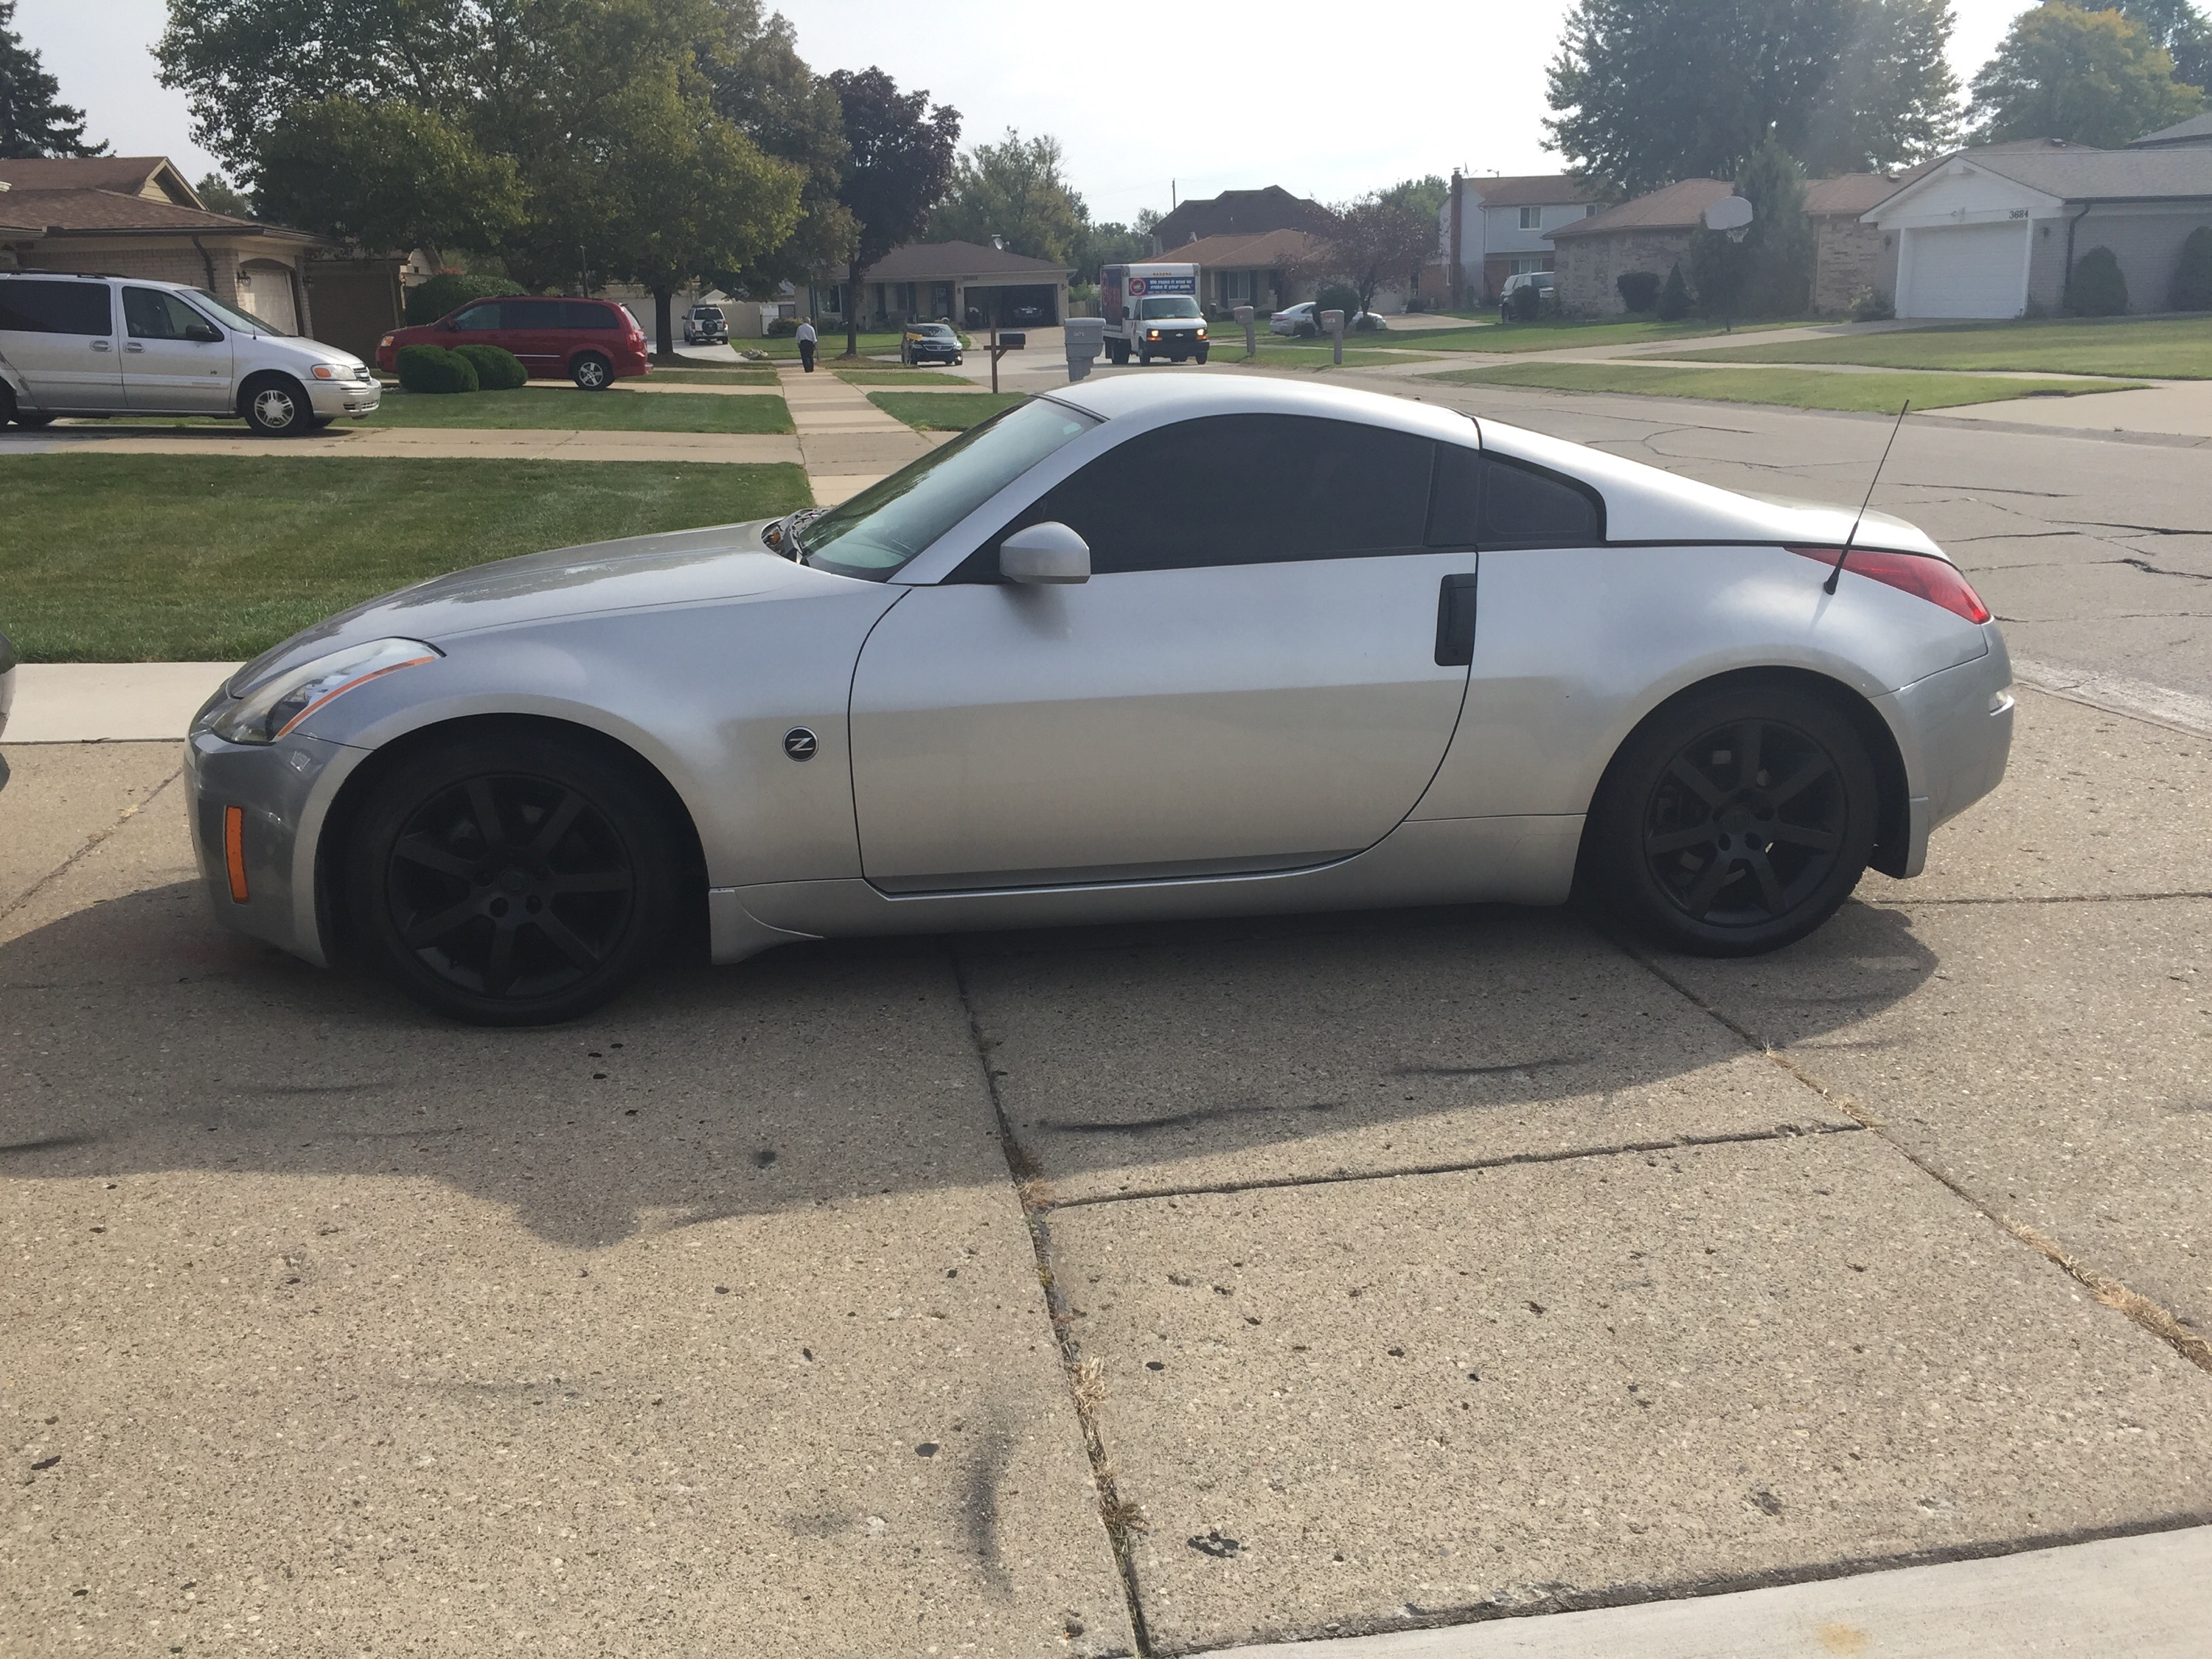 nissan 350z 2015 black. 2004 nissan 350z rims emblems and door handles done in gloss black 350z 2015